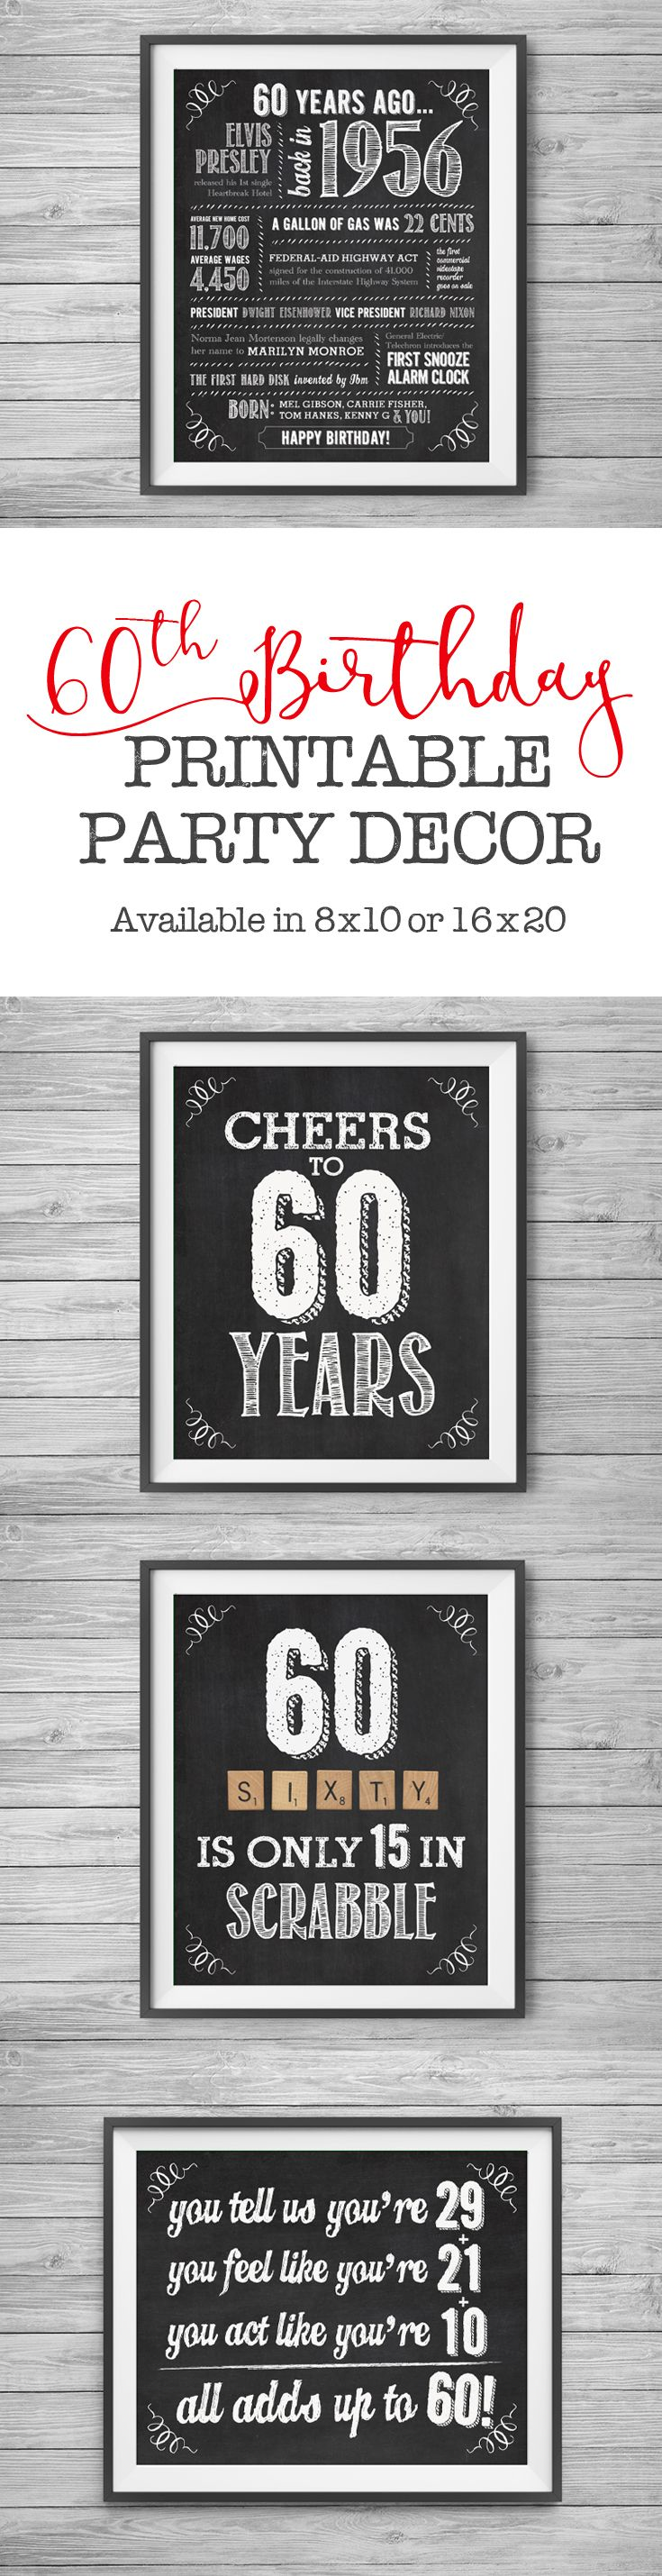 #60th Birthday, Printable Party Decor Supplies, 4 Unique 8x10 Signs, Instant Digital Downloads, DIY Print at Home by #NviteCP